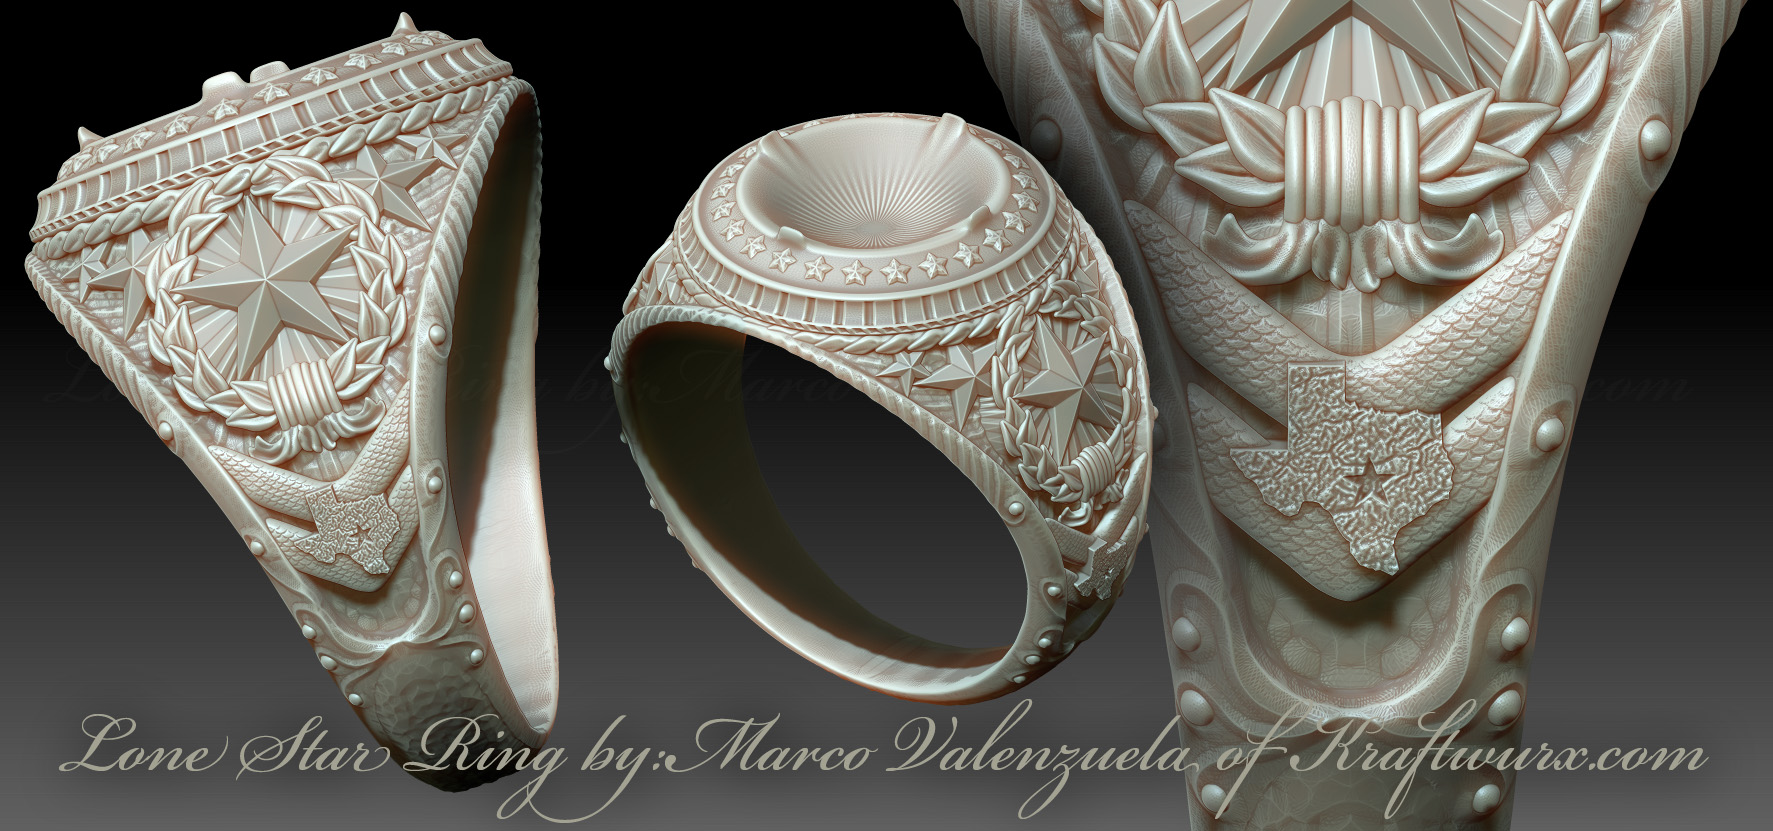 Lone Star Ring For 3d Printing Jewelry